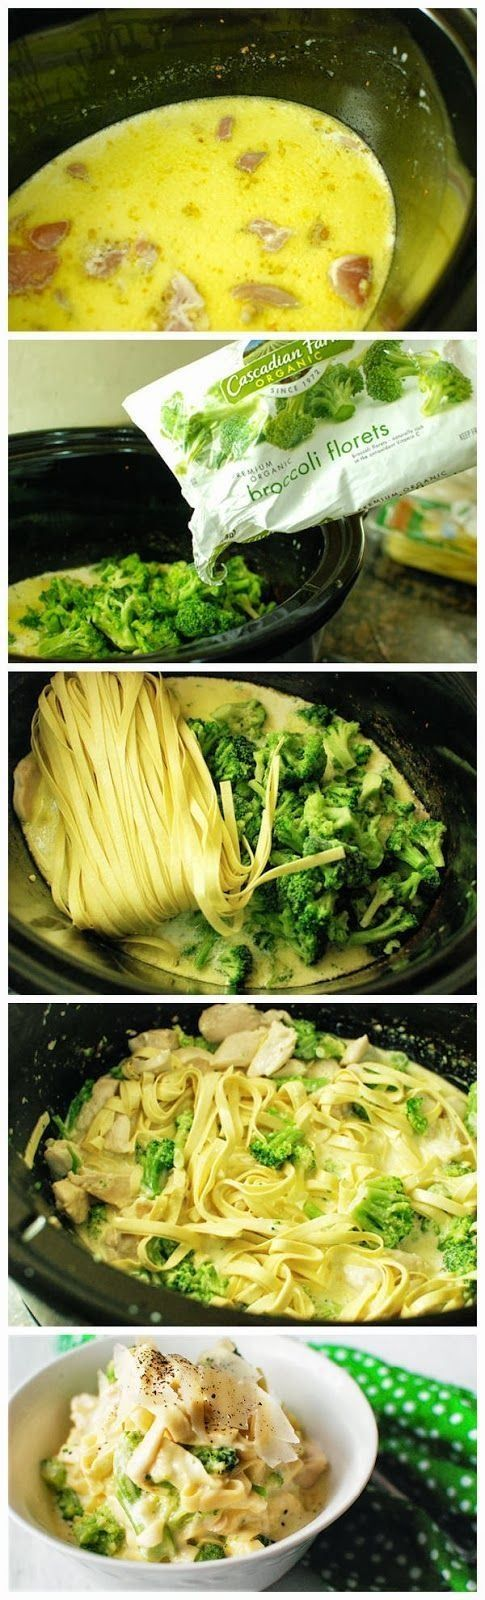 Slow Cooker Chicken Fettuccine Alfredo# slow cooker healthy recipes - Healthy and Diet Friendly Food Recipes. - Eating Yummy